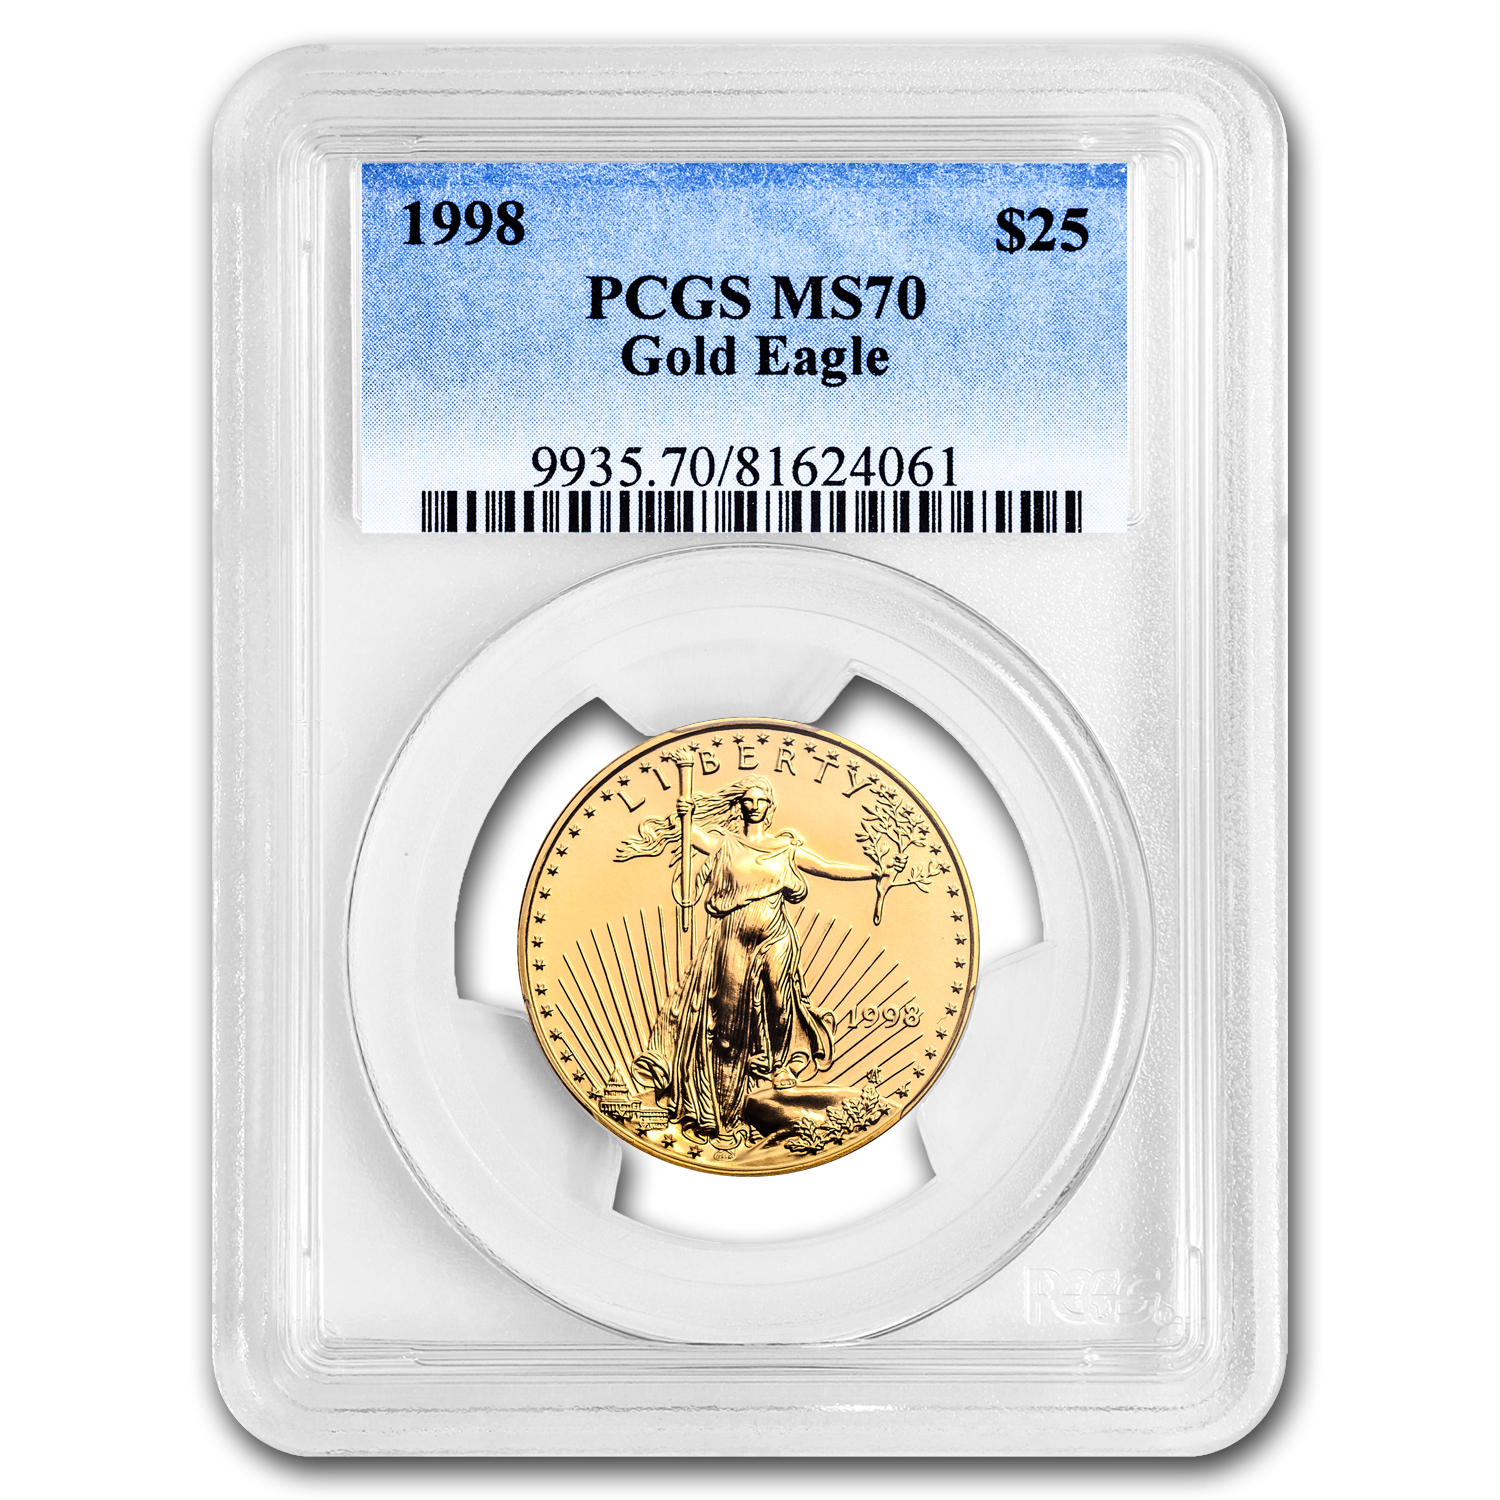 1998 1/2 oz Gold American Eagle MS-70 PCGS (Registry Set)